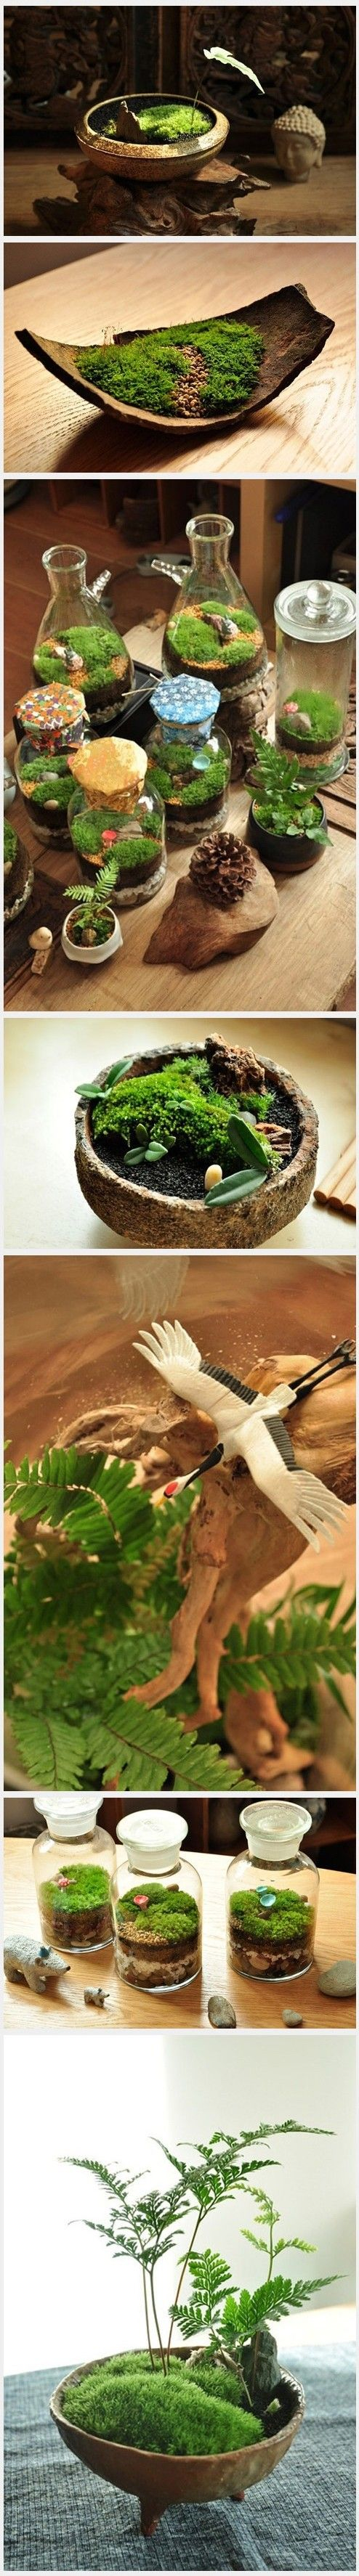 Moss gardens, for Kensie to make a fairy garden....so cute. SUBSCRIBE YOUTUBE CHANNEL: http://www.youtube.com/user/TheFederic777?sub_confirmation=1 FACEBOOK: https://www.facebook.com/GardenFlowers2015 PINTEREST: http://es.pinterest.com/fredalb/ BLOGS: http://tips-to-help-you-the-gerberas-2.blogspot.com/ http://your-first-garden-3.blogspot.com/ http://garden-care-hoeing-and-weeding-2015.blogspot.com/ #Video #Garden #flowers #Pants #foto